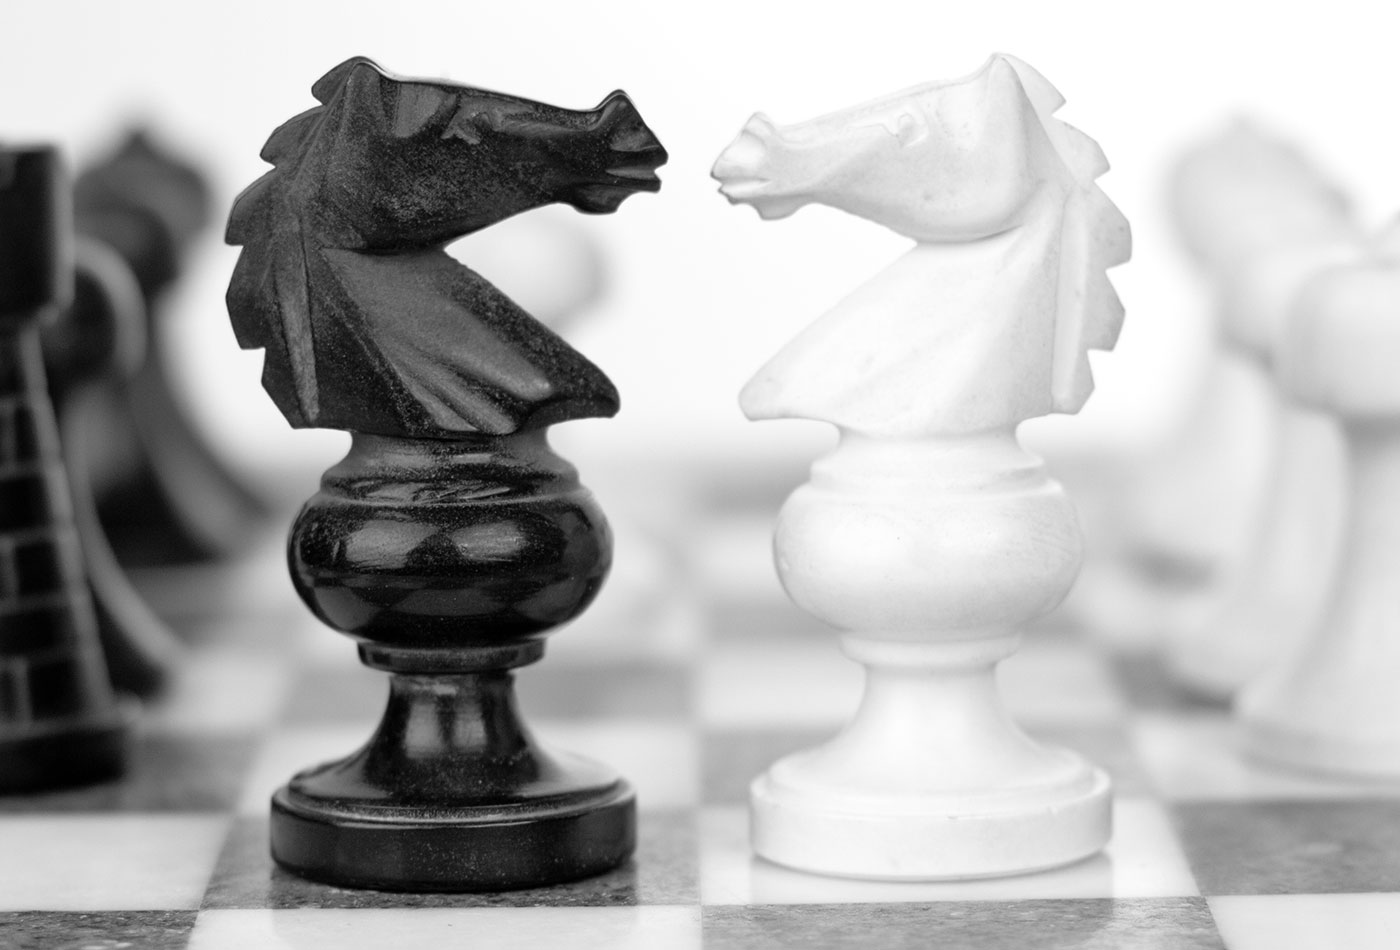 Chess knights in battle